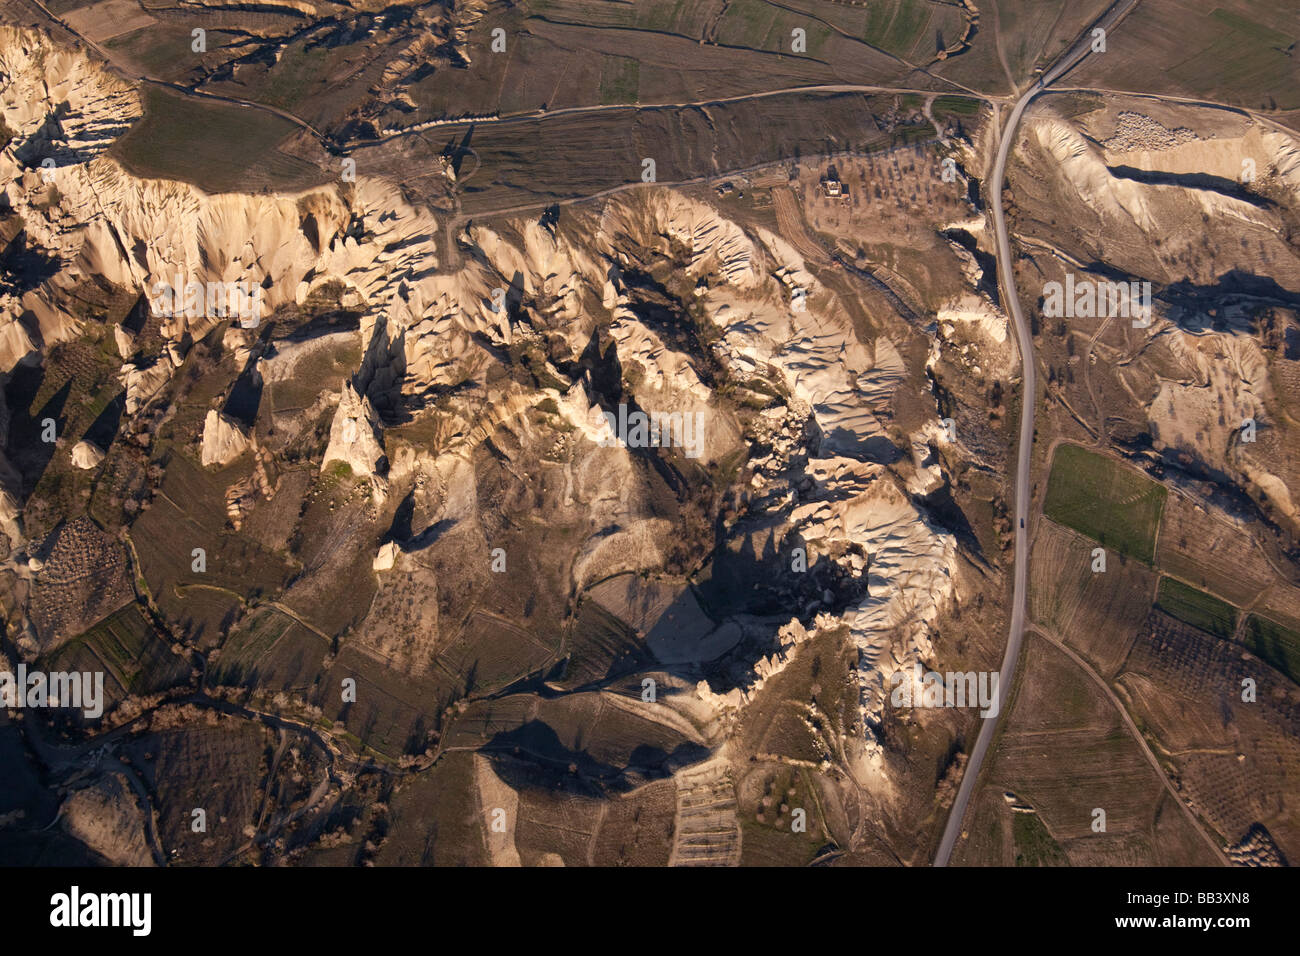 Aerial view of the rough terrain in Cappadocia Turkey - Stock Image